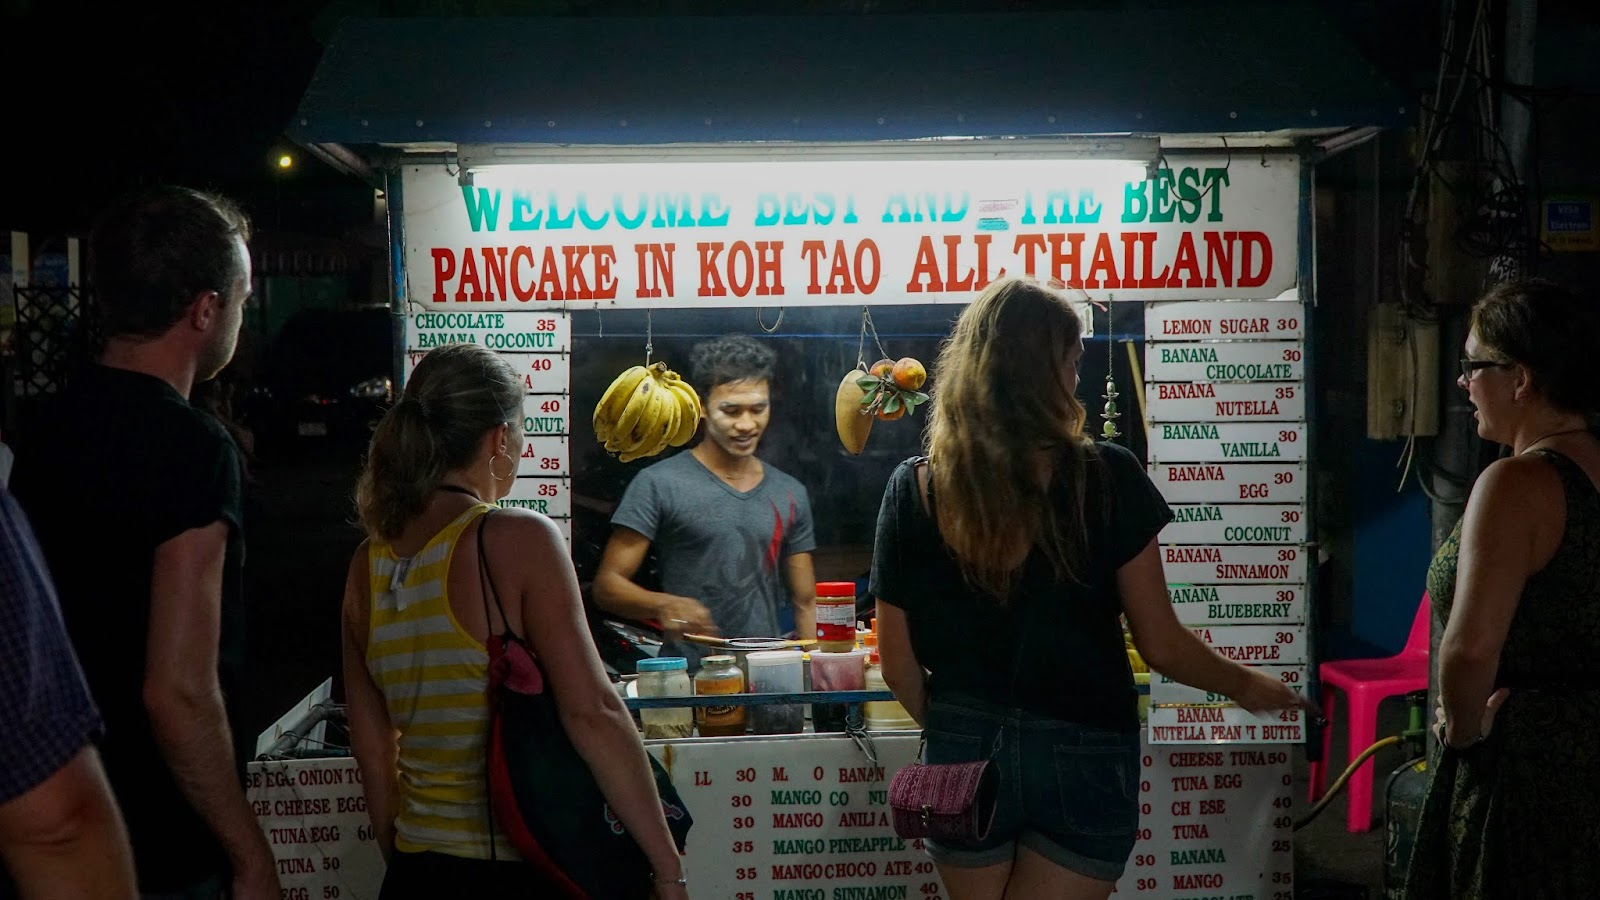 Trying out supposedly the 'best' pancake in Koh Tao. Verdict? It's passable I guess